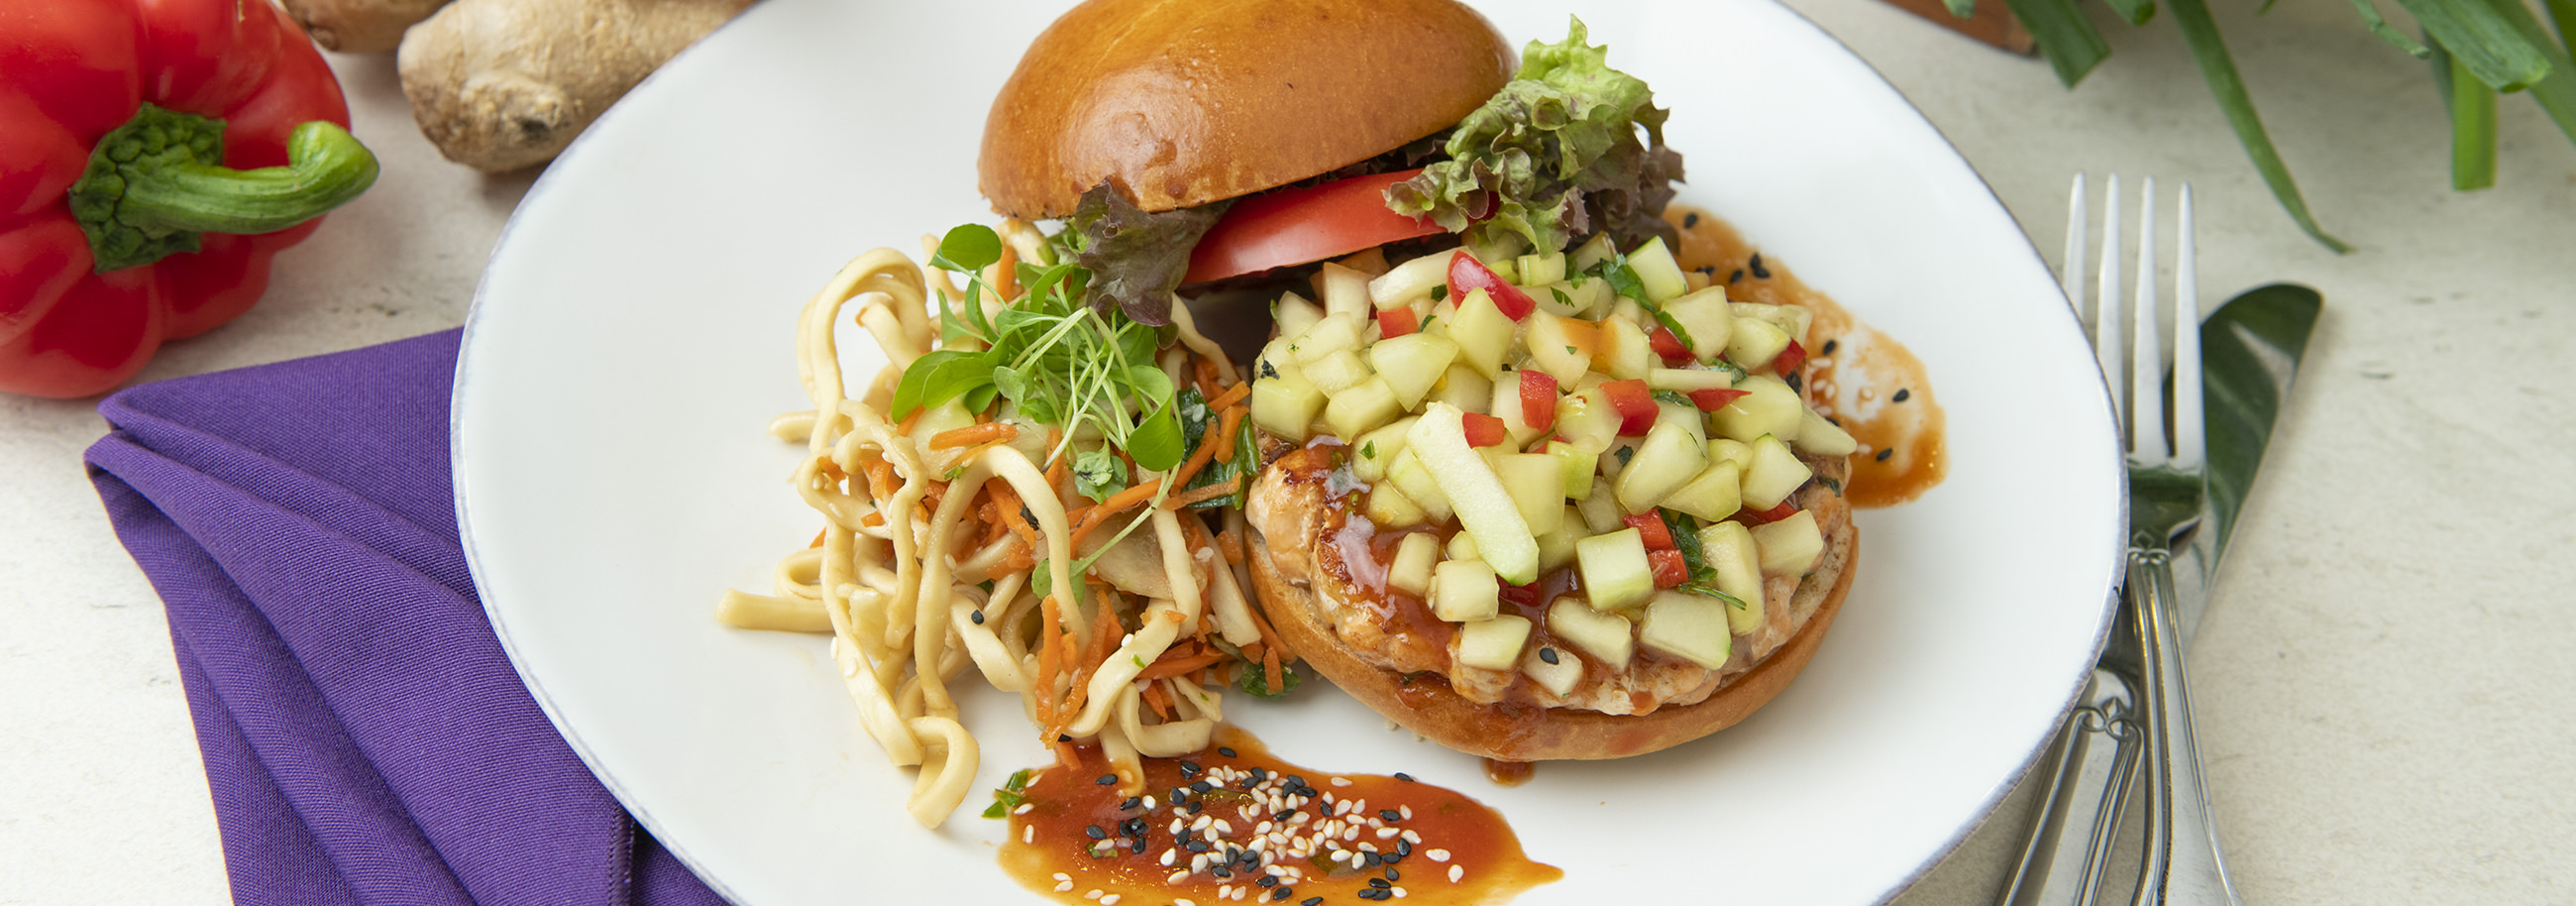 Asian Glazed Salmon Burger with Cucumber Relish